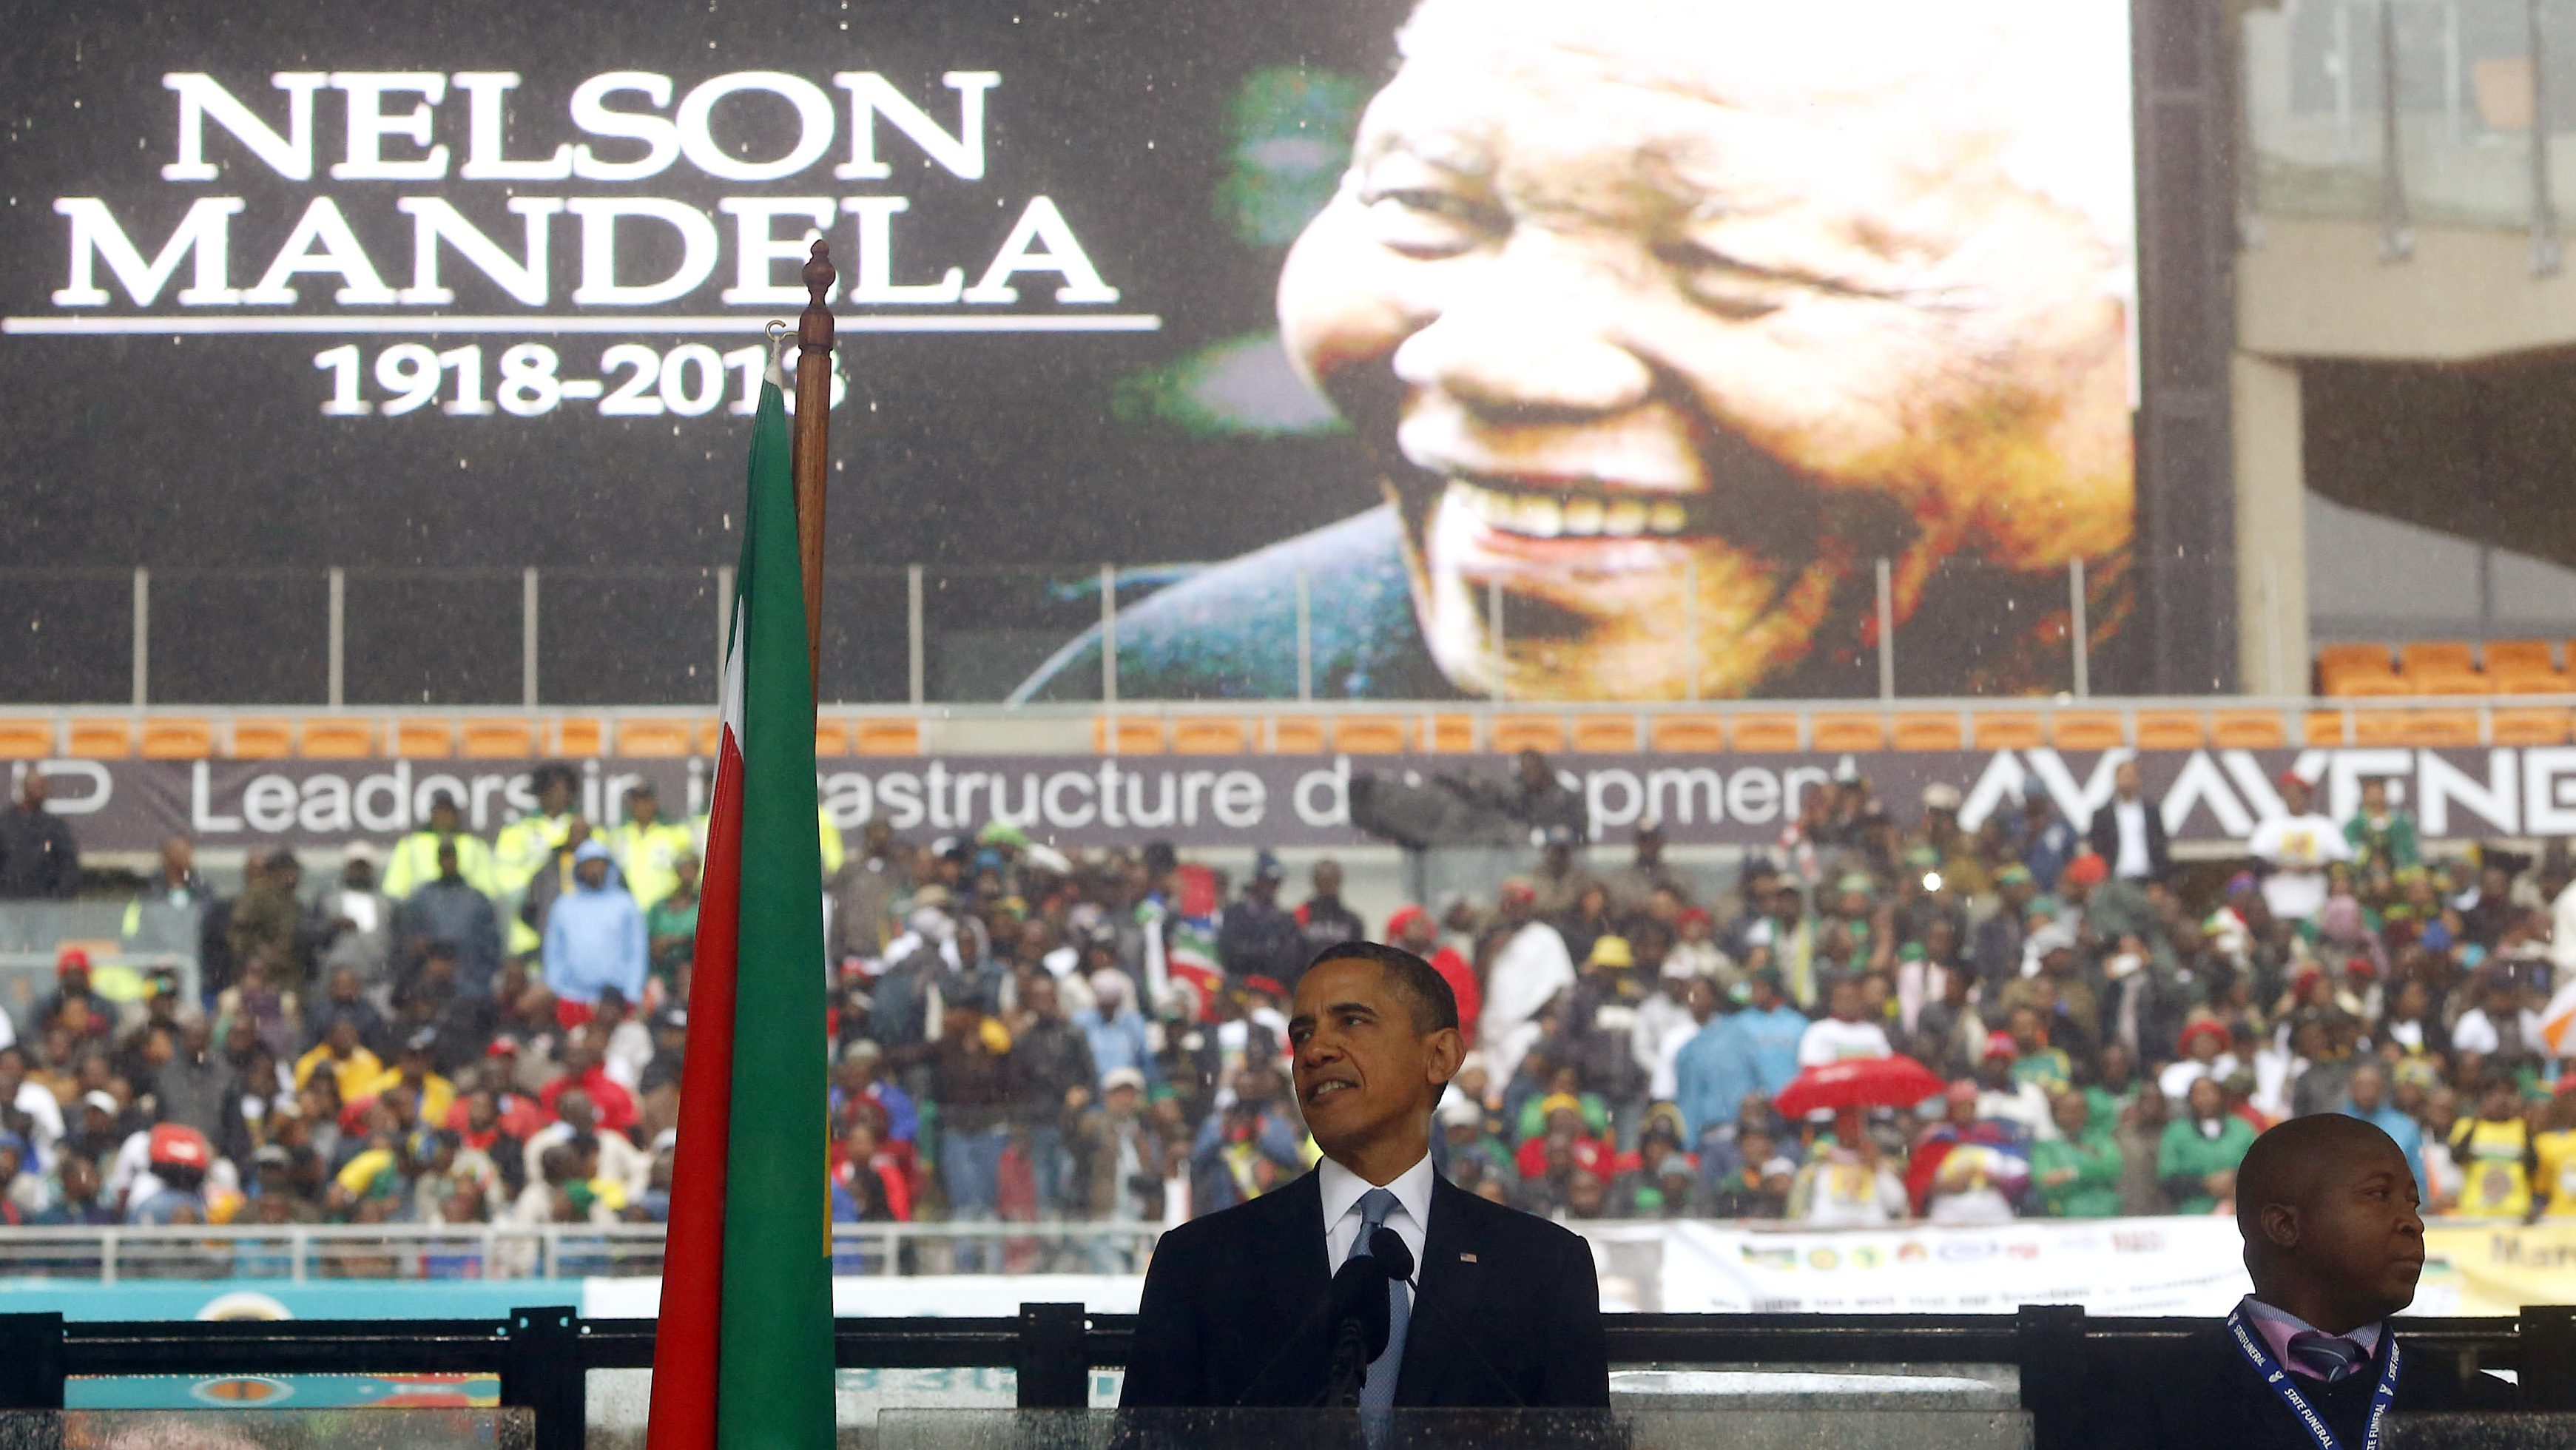 U.S. President Barack Obama gives a speech as a man passing himself off as a sign language interpreter (R) folds his hands during a memorial service for late South African President Nelson Mandela at the FNB soccer stadium in Johannesburg December 10, 2013.